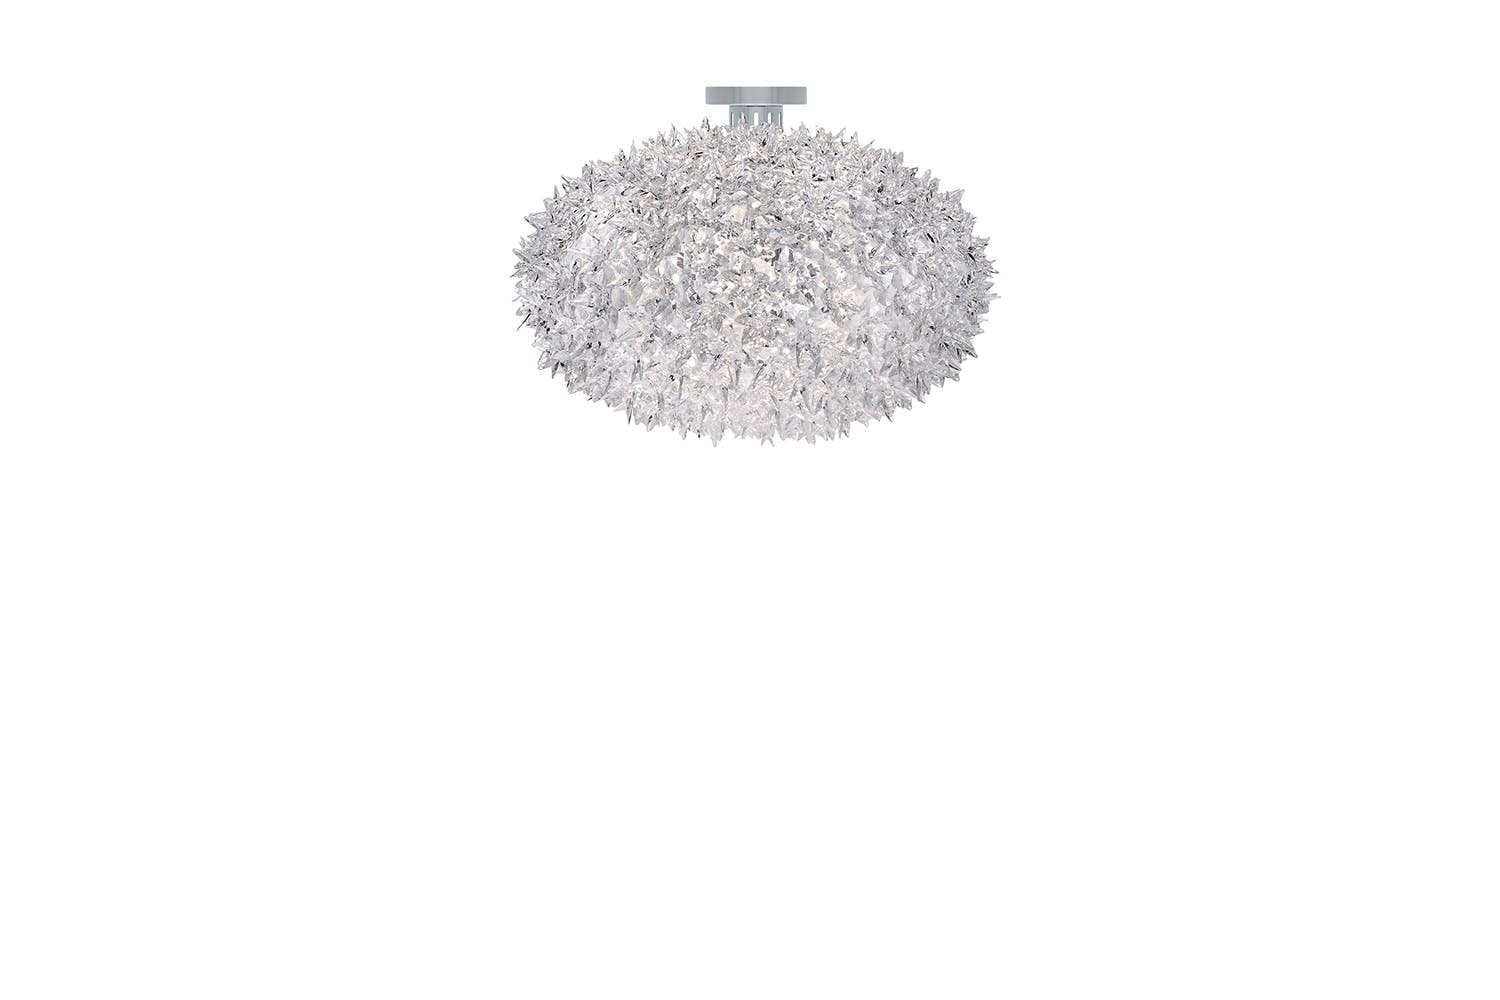 bloom new large ceiling lamp by ferruccio laviani for kartell space furniture black white bloom ferruccio laviani